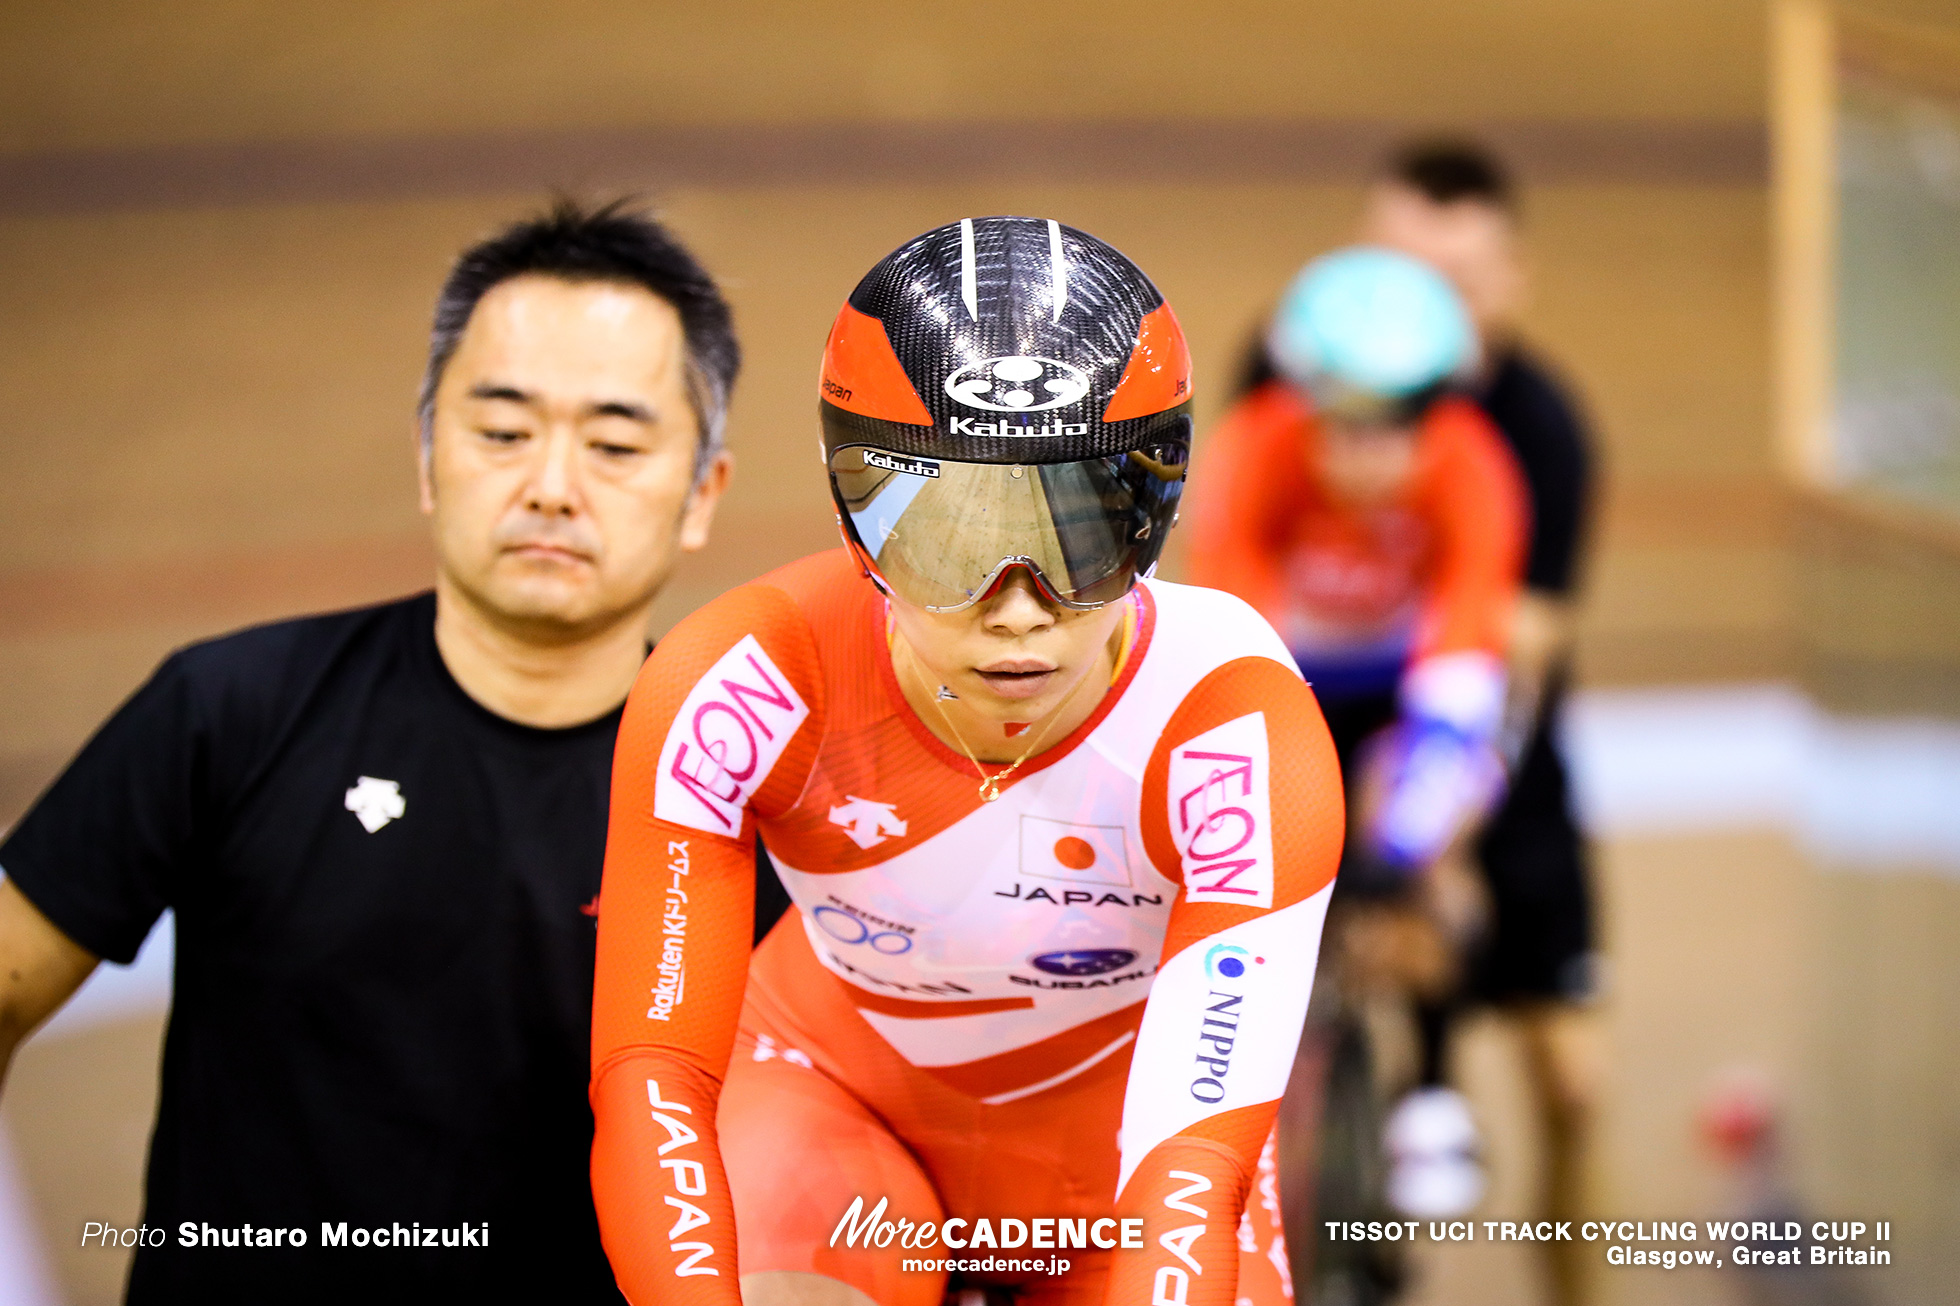 1st Round / Women's Sprint / TISSOT UCI TRACK CYCLING WORLD CUP II, Glasgow, Great Britain, 太田りゆ